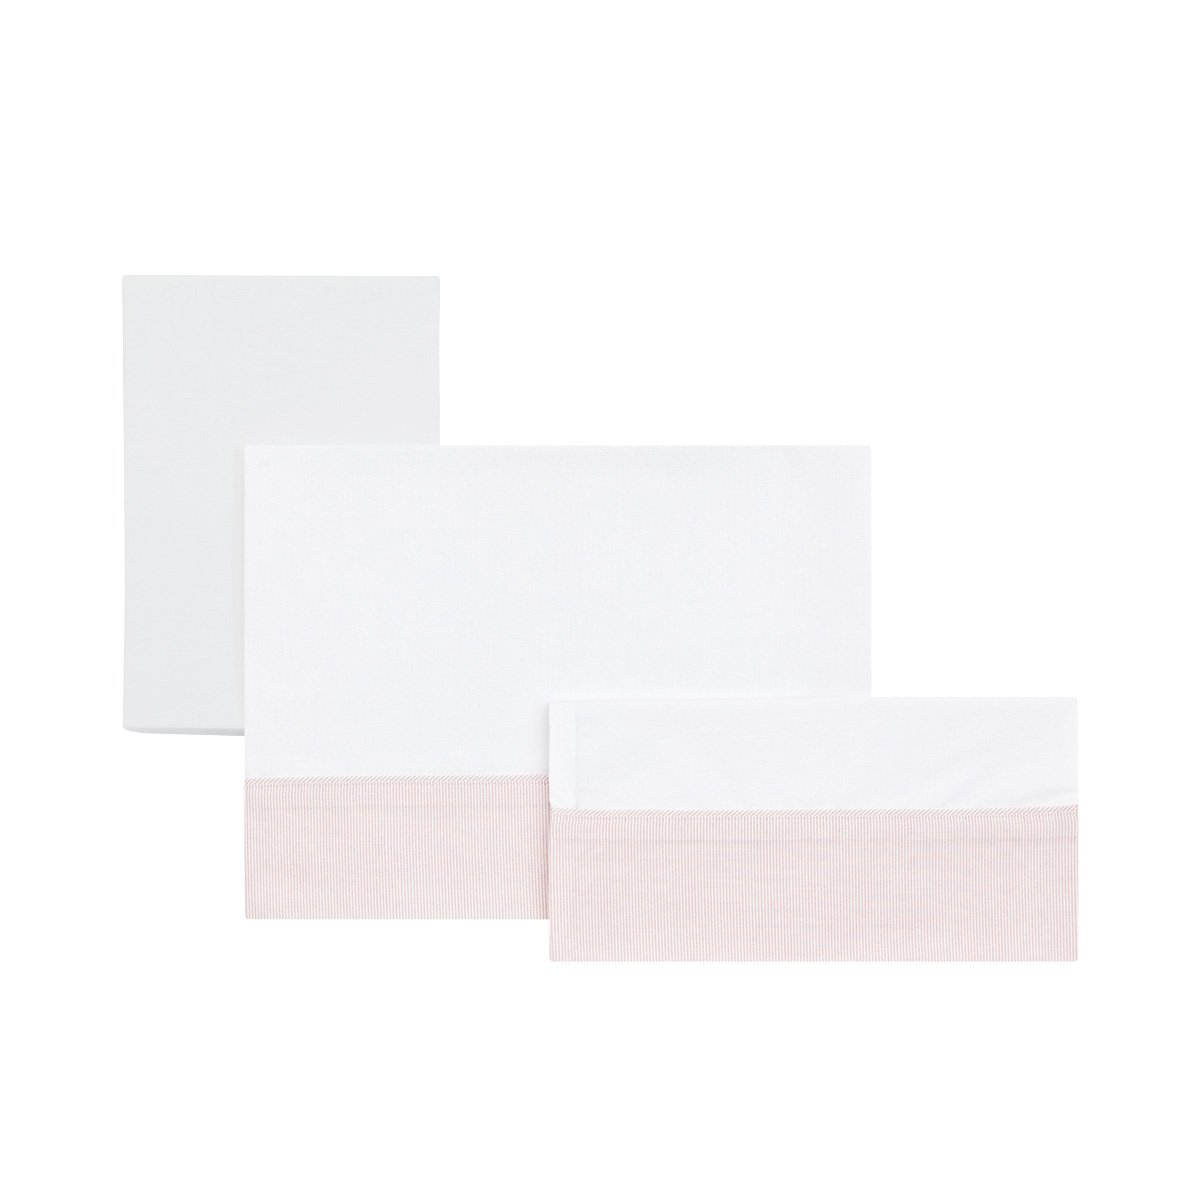 Cambrass Small Bed/Crib FlatSheet (80 x 120 cm, Star Pink, Set of 3) 35049.0